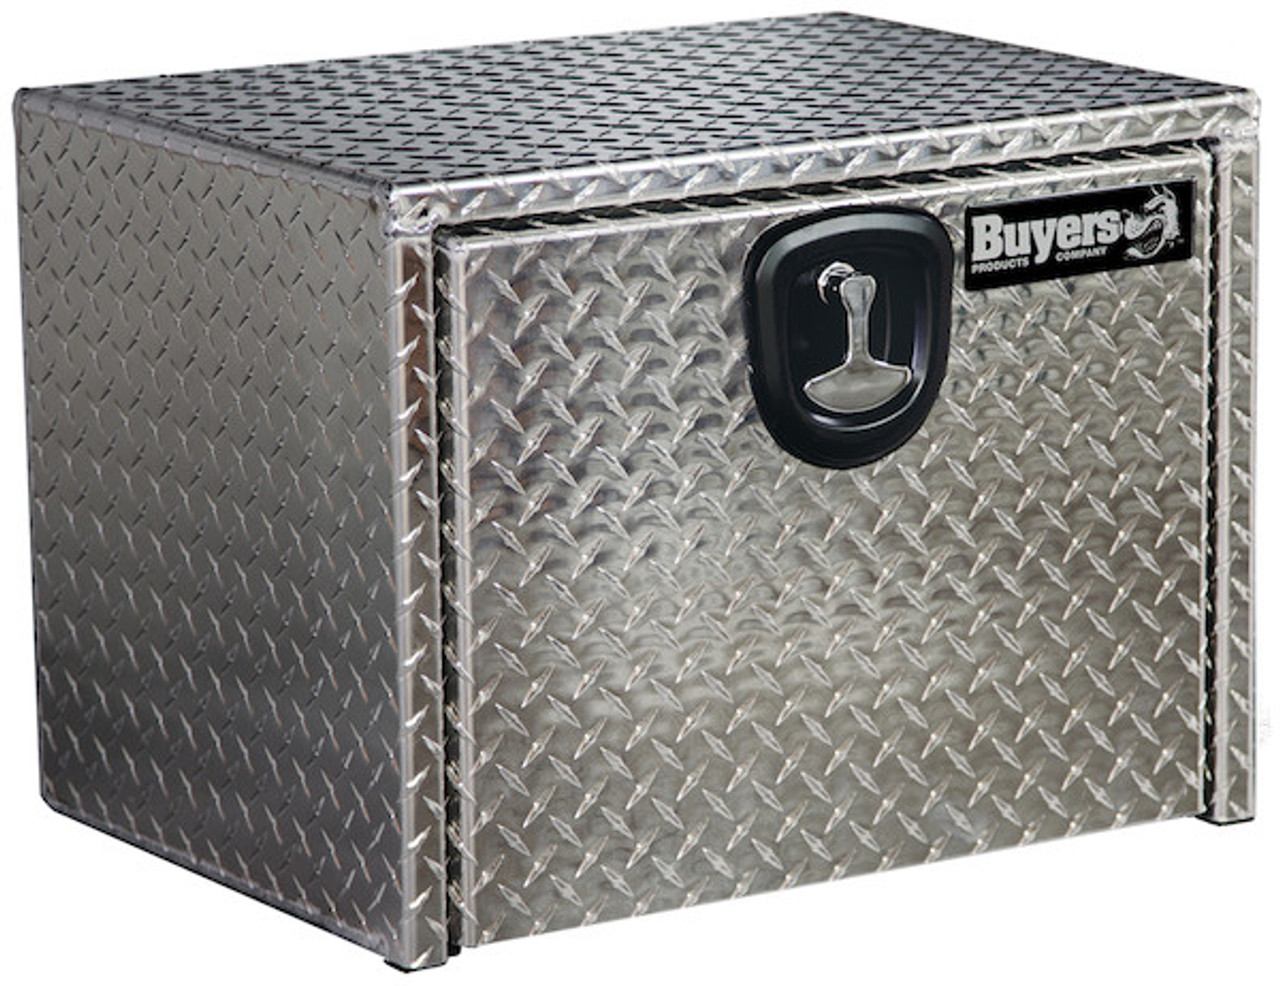 "1705148 BUYERS PRODUCTS DIAMOND TREAD ALUMINUM UNDERBODY TRUCK TOOLBOX 14""HX12""DX16""W"